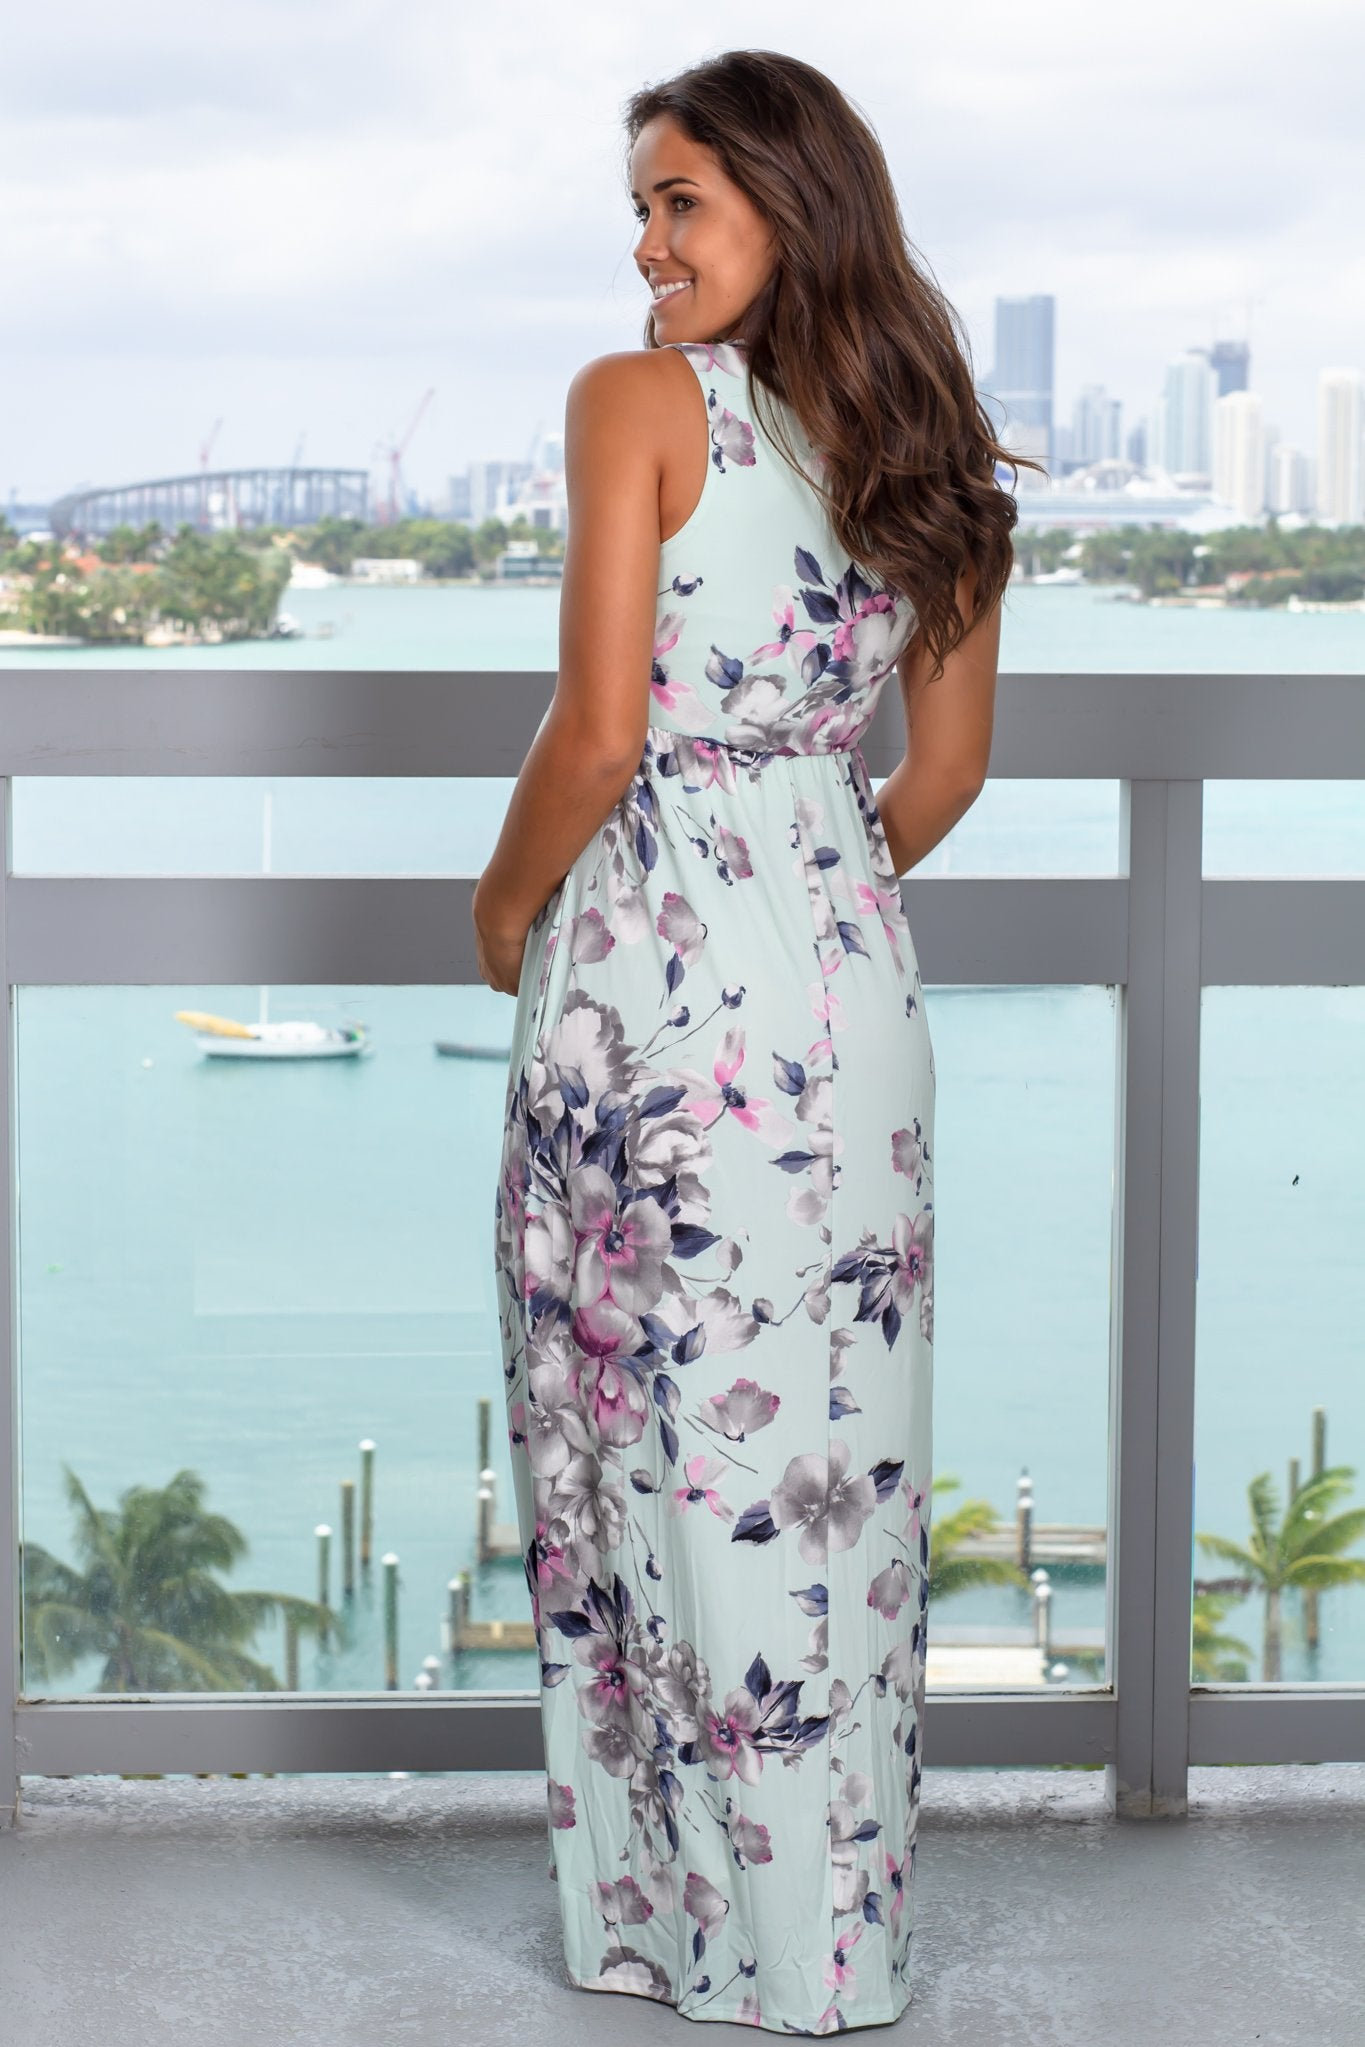 Dusty Mint Floral Racerback Maxi Dress With Pockets Saved By The Dress Saved By The Dress